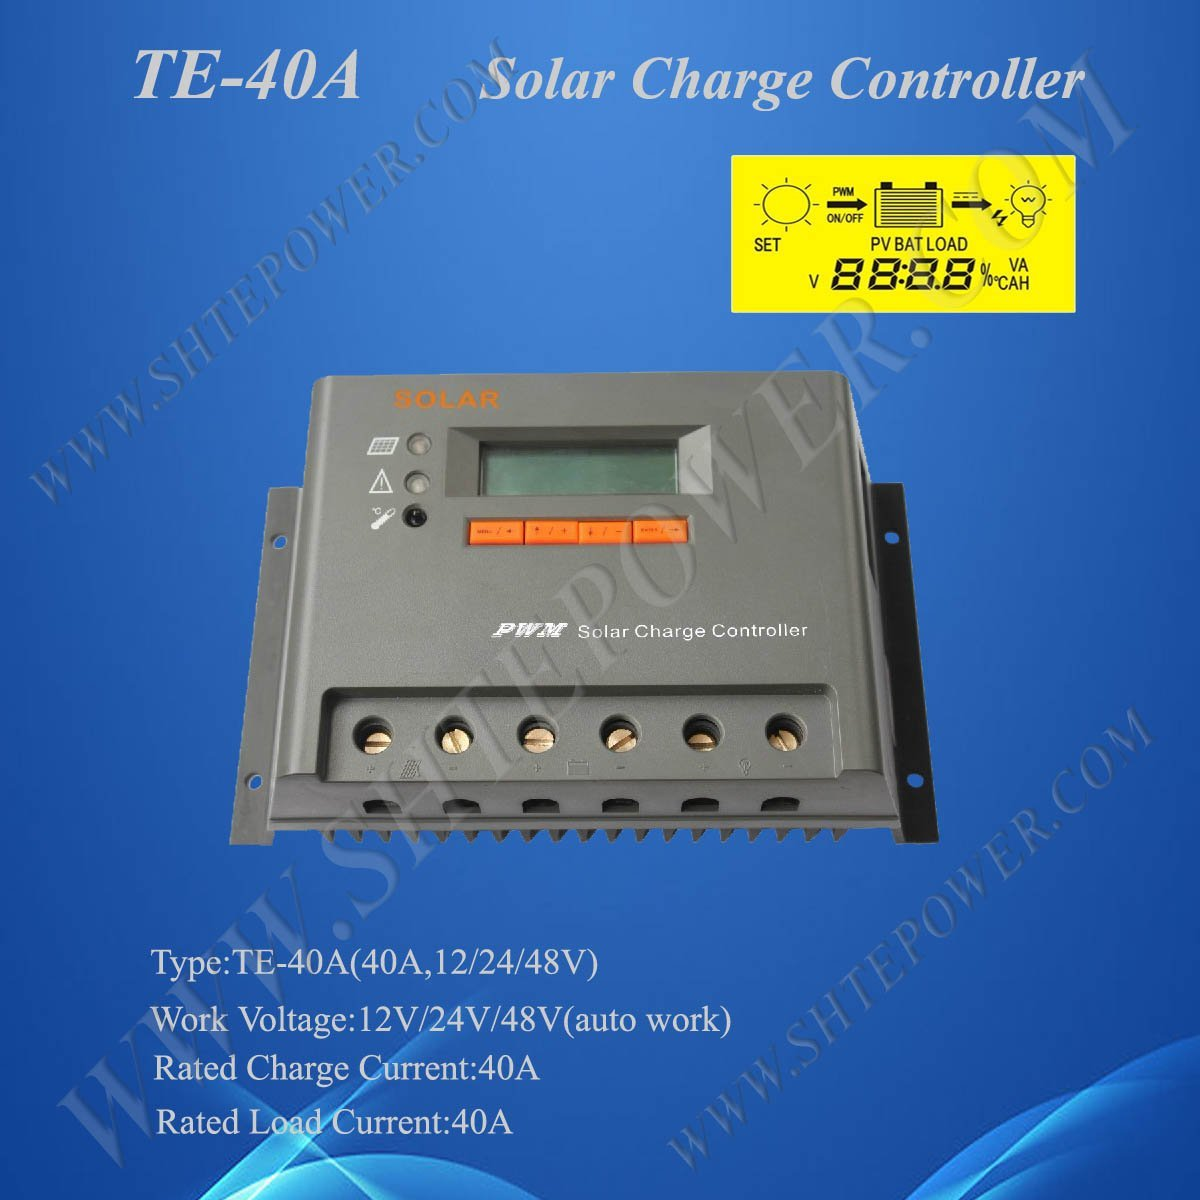 Solar Panel 12v 24v 48v auto work 40A Charger Controller, 2 Years Warranty for ins 1427 1425 laptop charger 90w cn 0p189k p189k original 2 years warranty